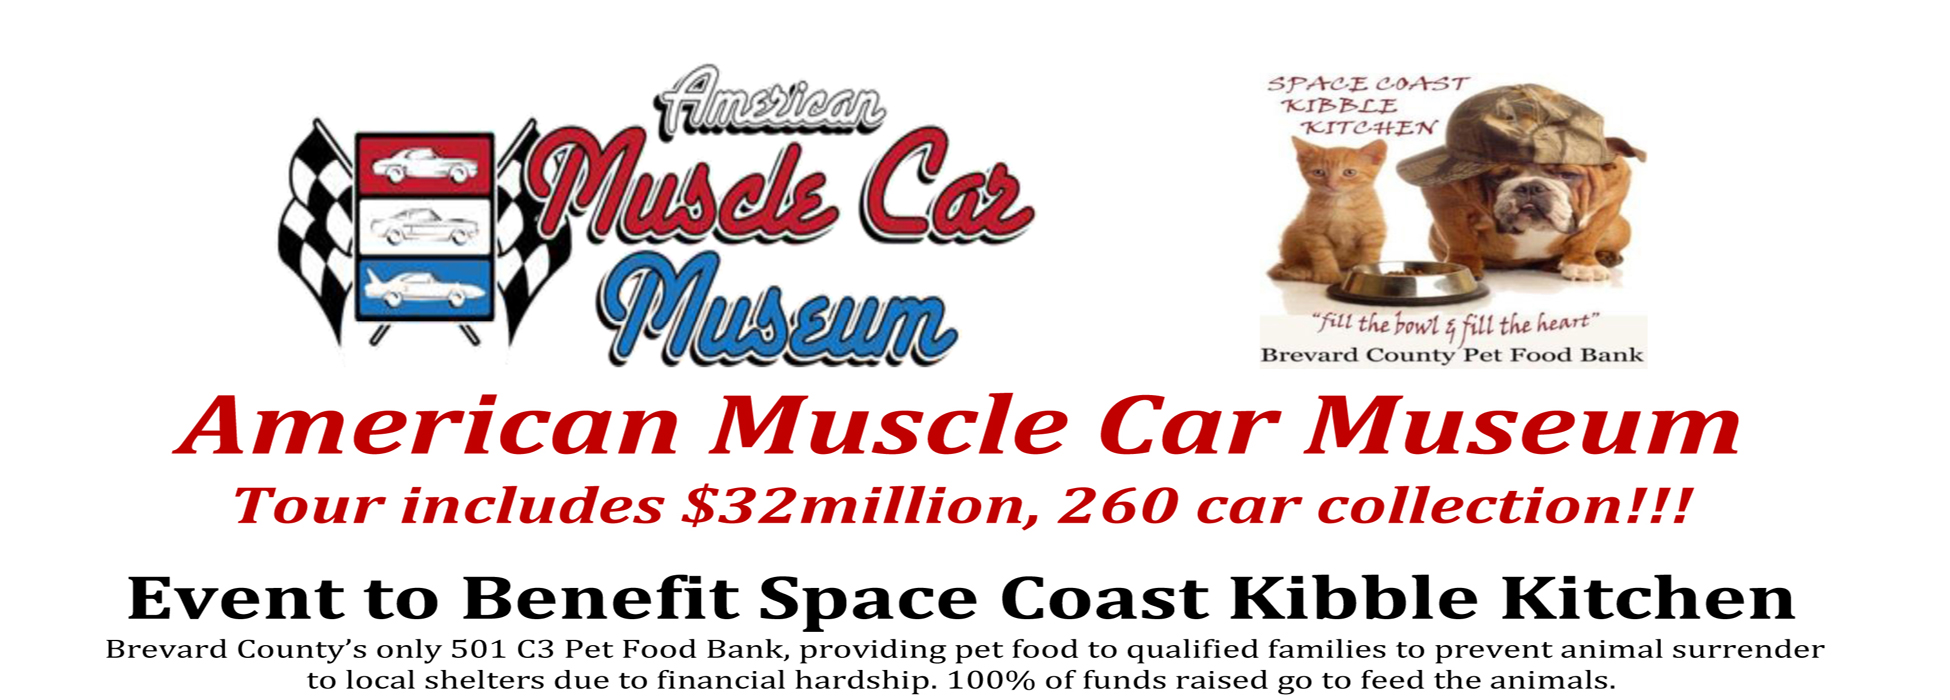 American Muscle Car Museum Fundraiser for Space Coast Kibble Kitchen